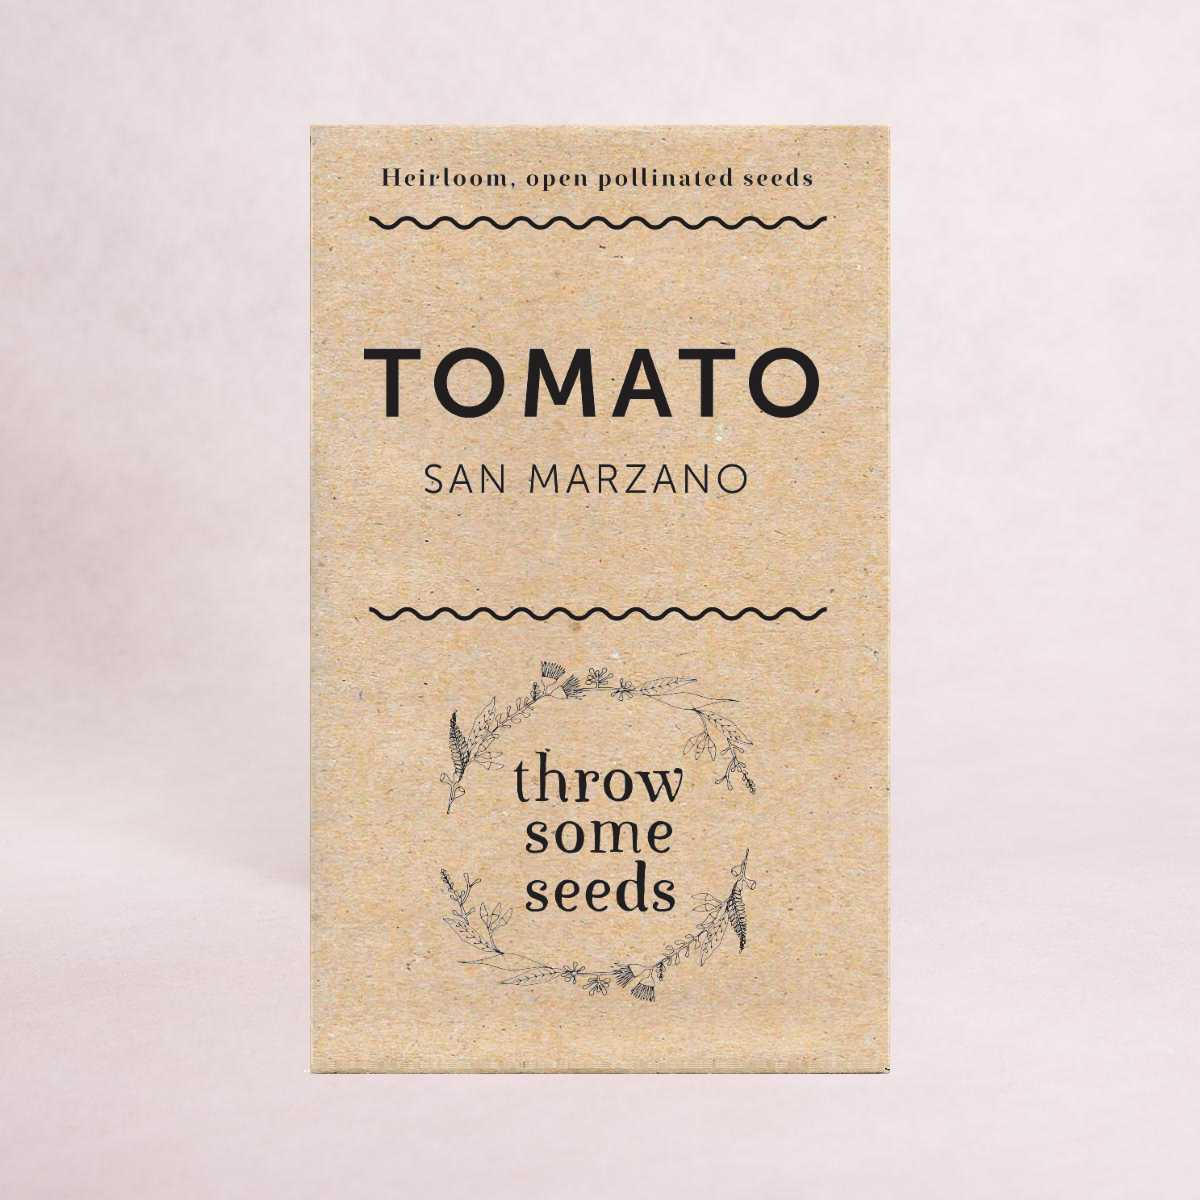 Tomato (San Marzano) Seeds - Seeds - Throw Some Seeds - Australian gardening gifts and eco products online!